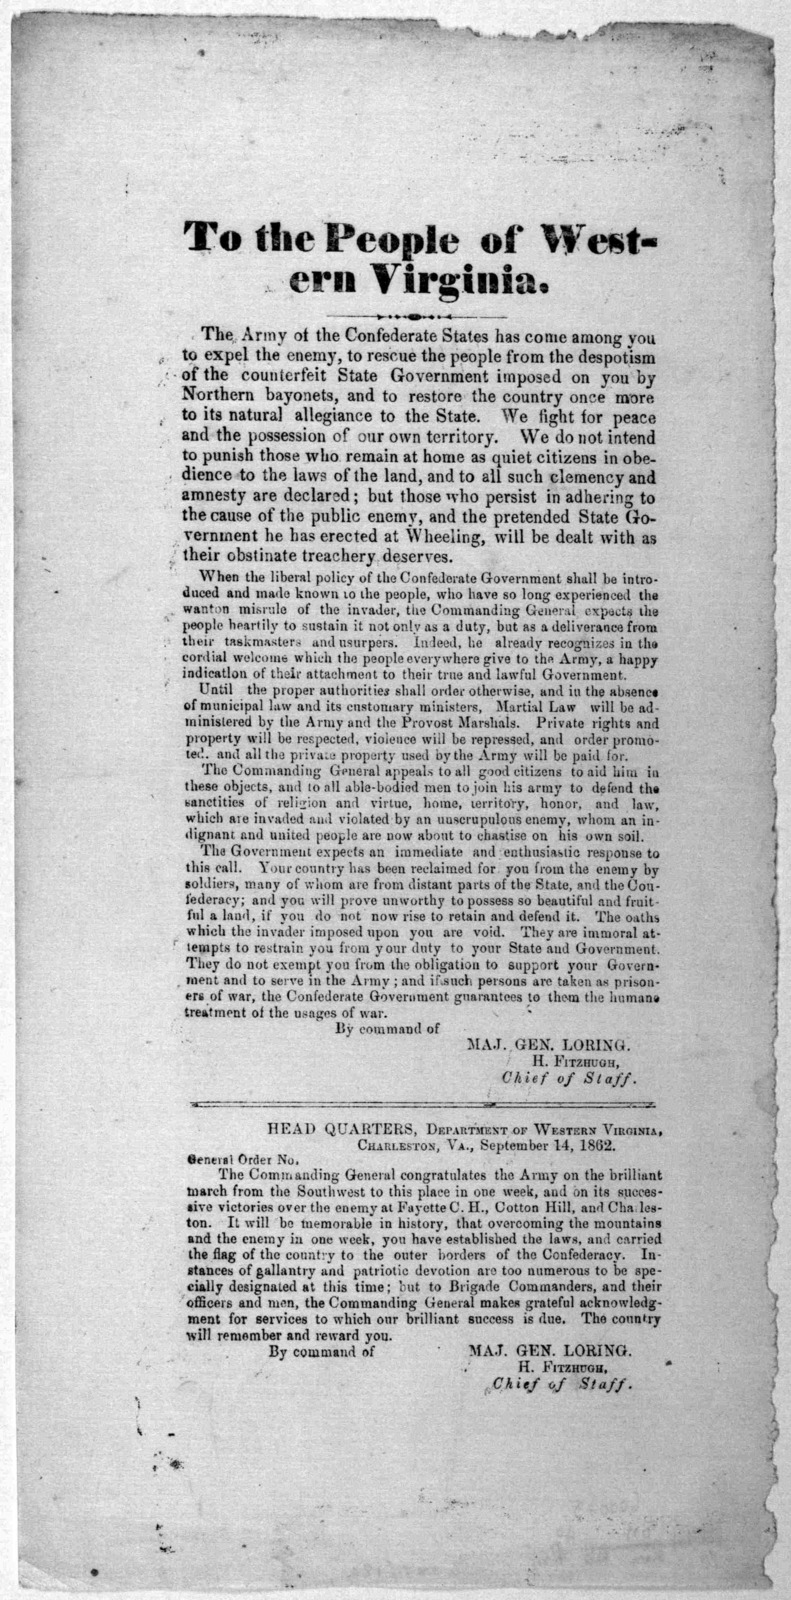 To the people of Western Virginia. The Army of the Confederate states has come among you to expel the enemy, to rescur the people from the despotism of the counterfeit state government imposed on you by the Northern bayonets, and to restore the